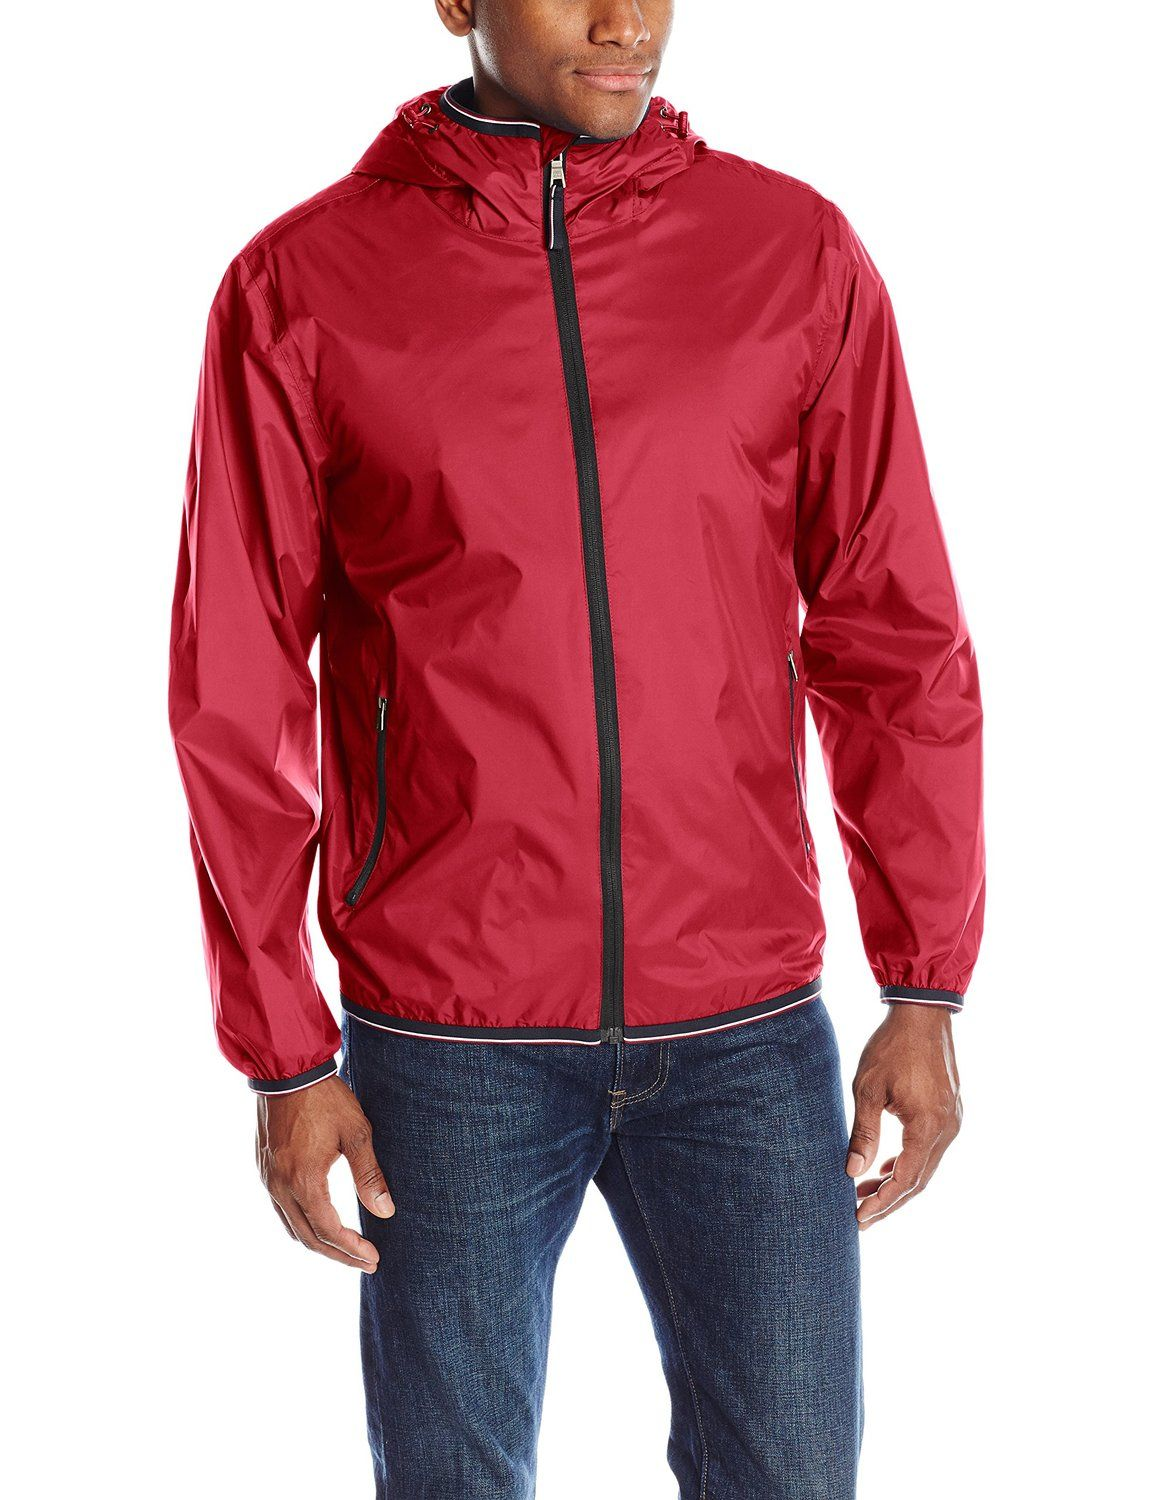 9cc19b8d4d Tommy Hilfiger Men s Waterproof Breathable Rain Shell Jacket at Amazon  Men s Clothing store